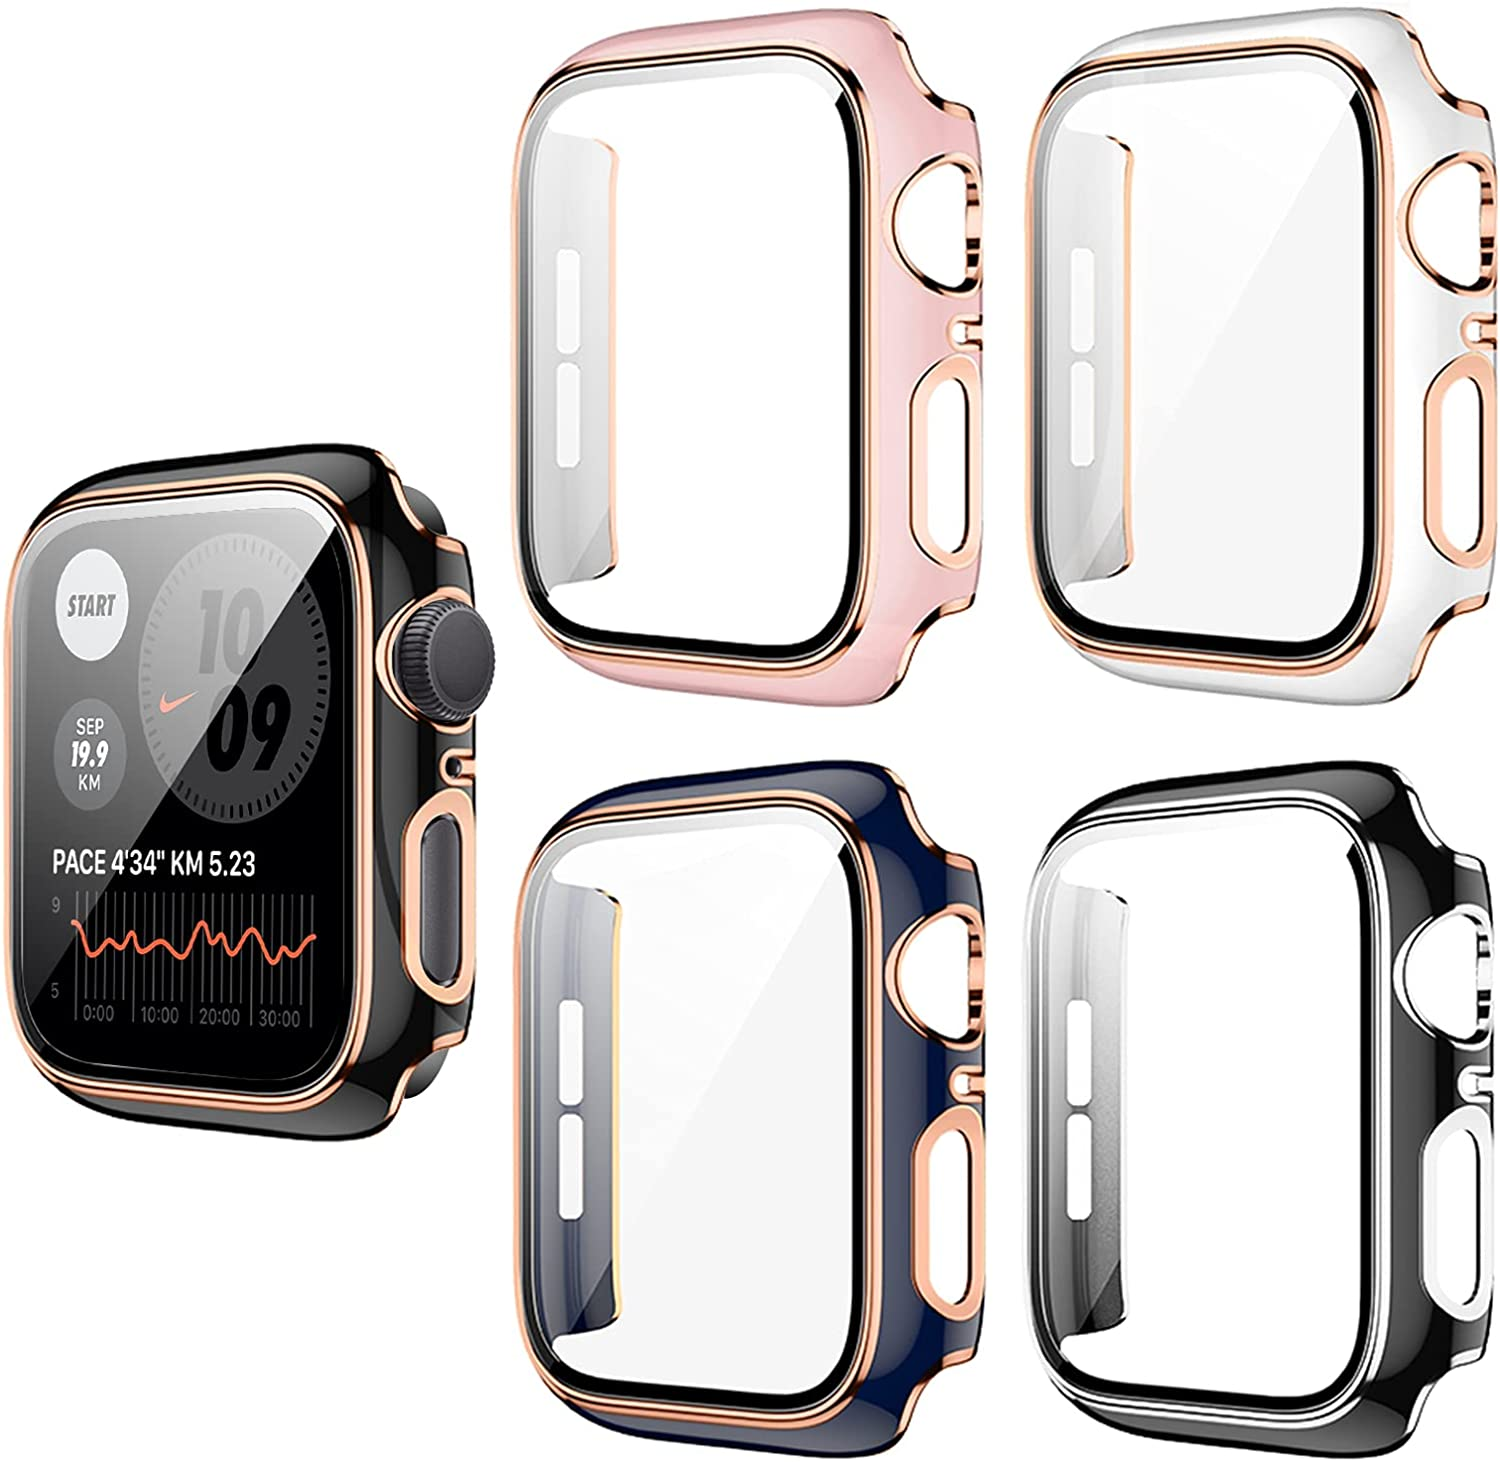 5 Pack Apple Watch Case with Tempered Glass Screen Protector for Apple Watch 42mm Series 3/2/1, Haojavo New Hard PC Ultra-Thin Scratch Resistant Bumper HD Protective Cover for iWatch Accessories